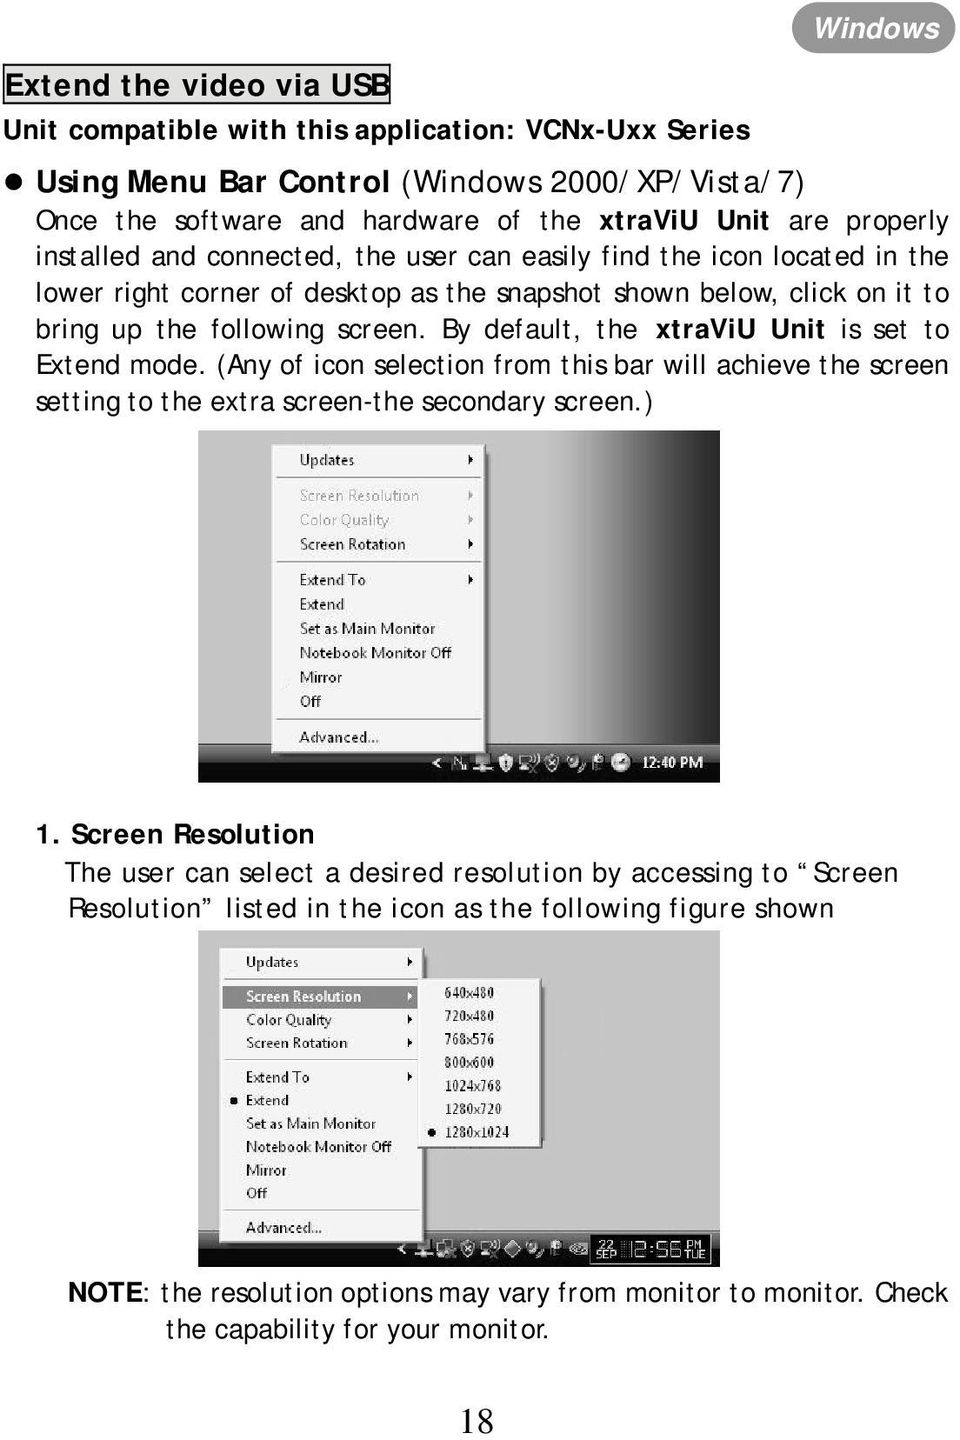 By default, the xtraviu Unit is set to Extend mode. (Any of icon selection from this bar will achieve the screen setting to the extra screen-the secondary screen.) 1.